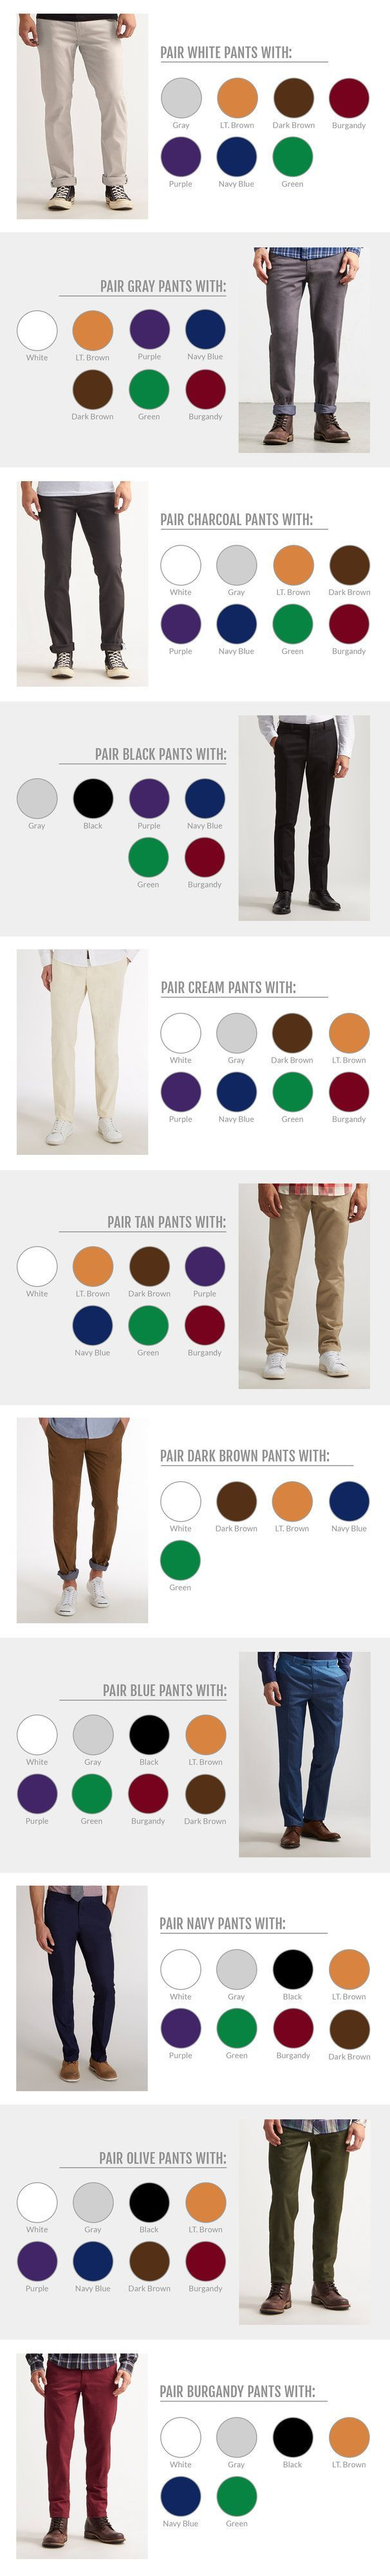 The JackThreads infographic: What color shoes should you